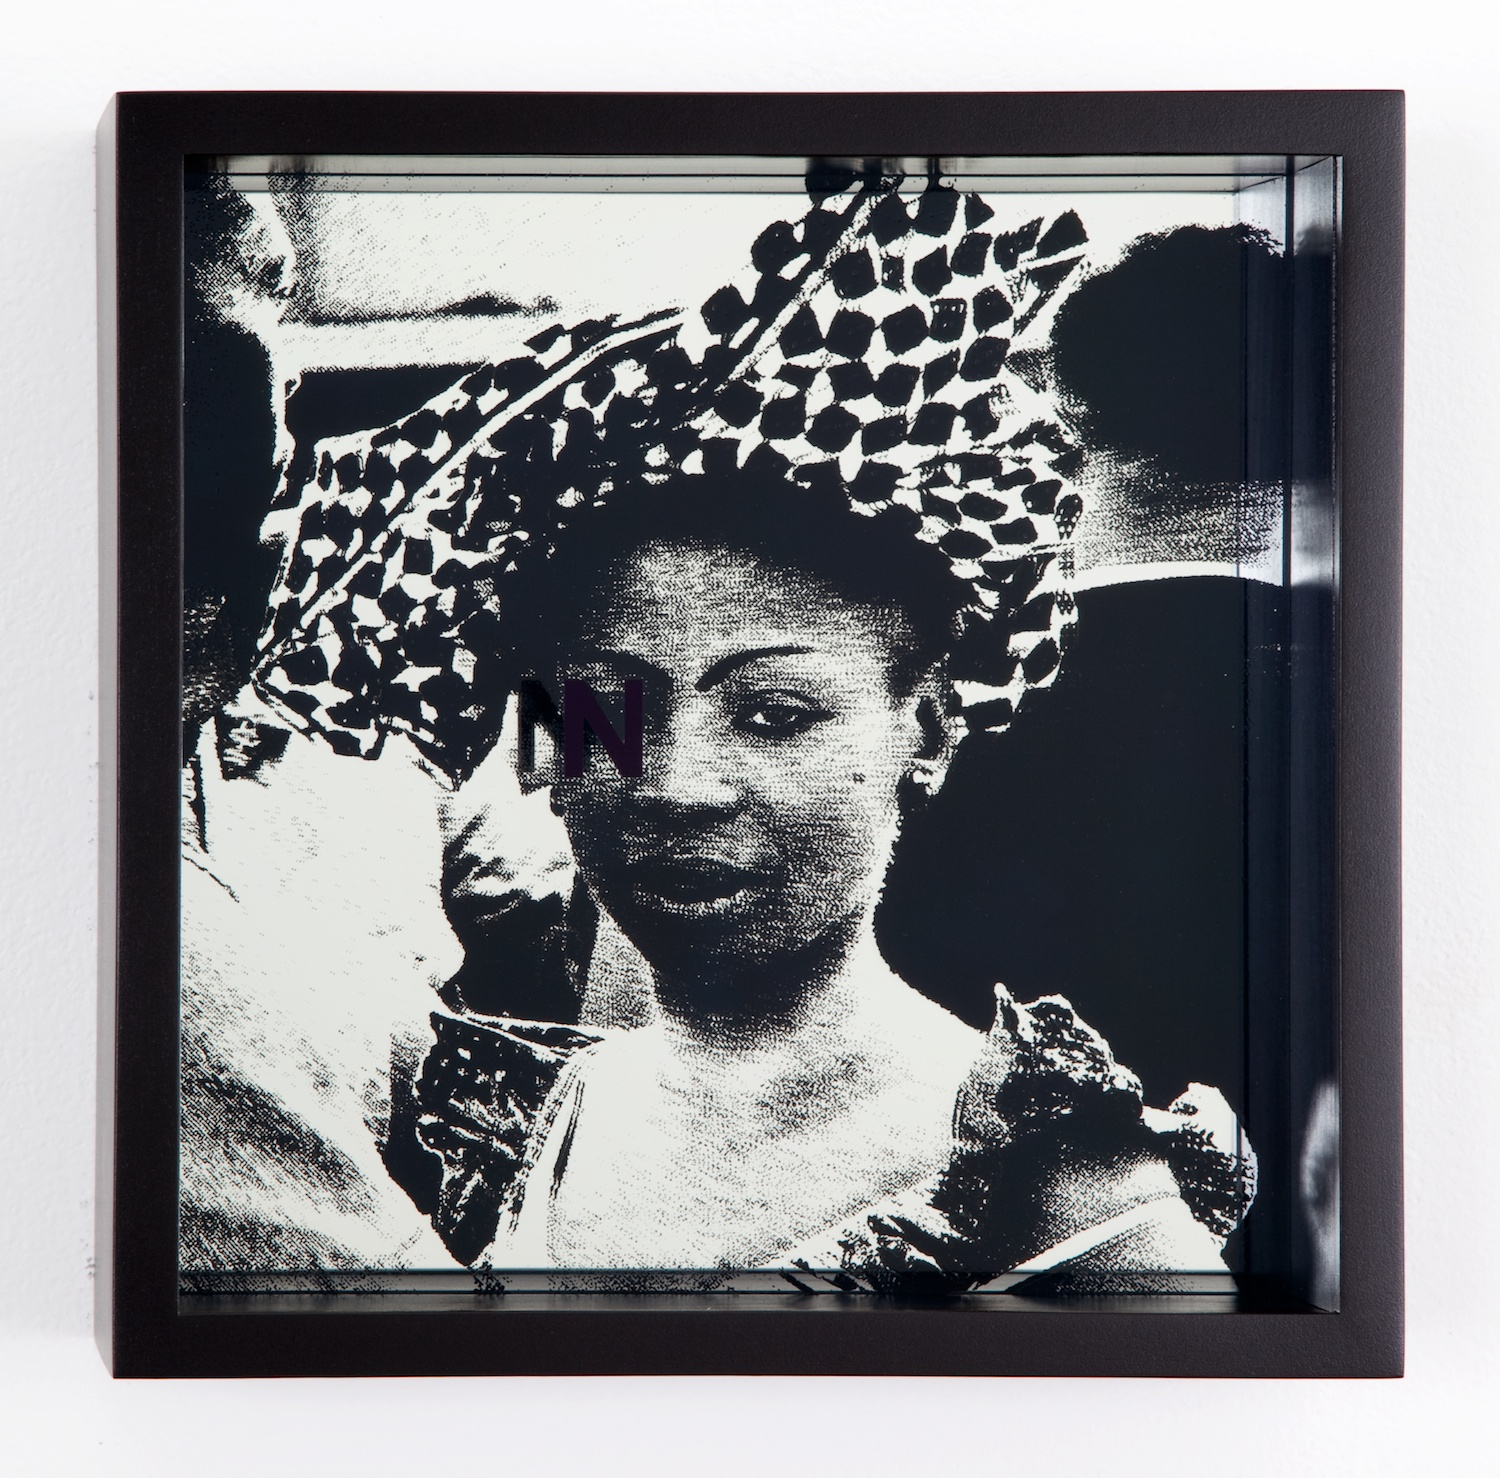 Adam Pendleton  System of Display, N (ANCIENT/Ian Berry, couple dancing during independence celebration Congo, 1960)  2011 Silkscreen on glass and mirror 9 ⅞h x 9 ⅞w x 3d in AdamP013